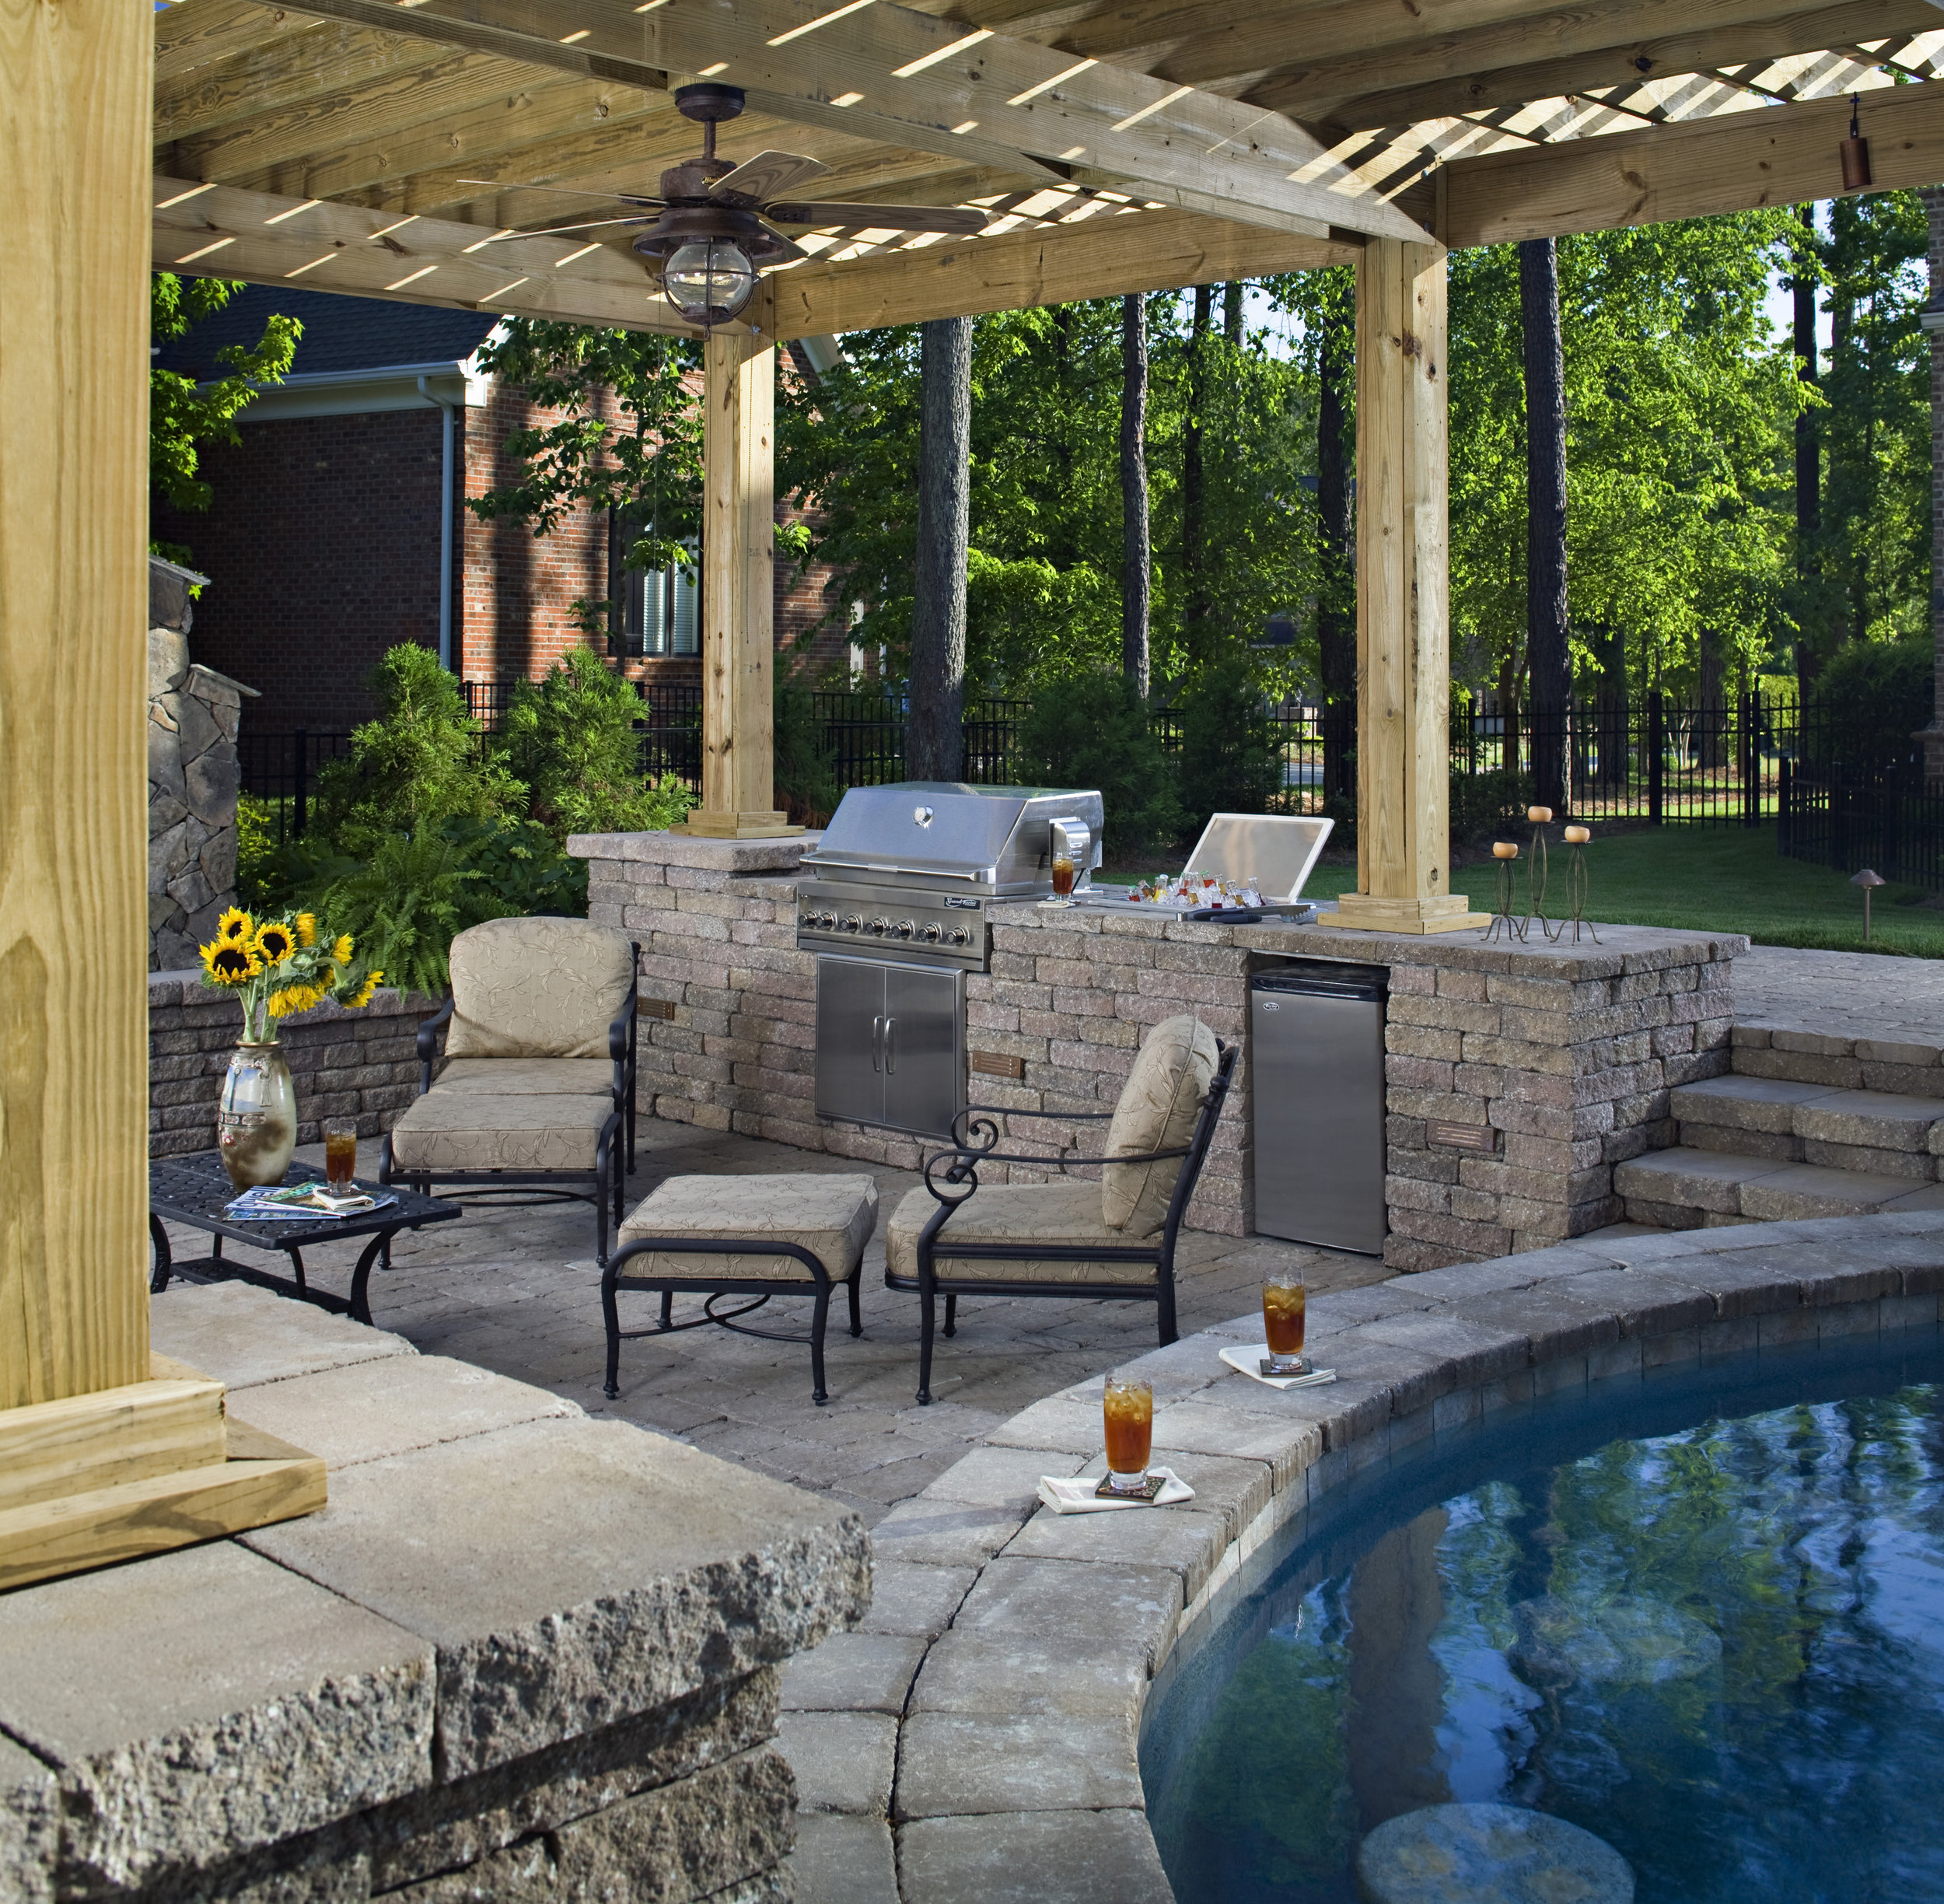 outdoor kitchen dining patio pool landscape design